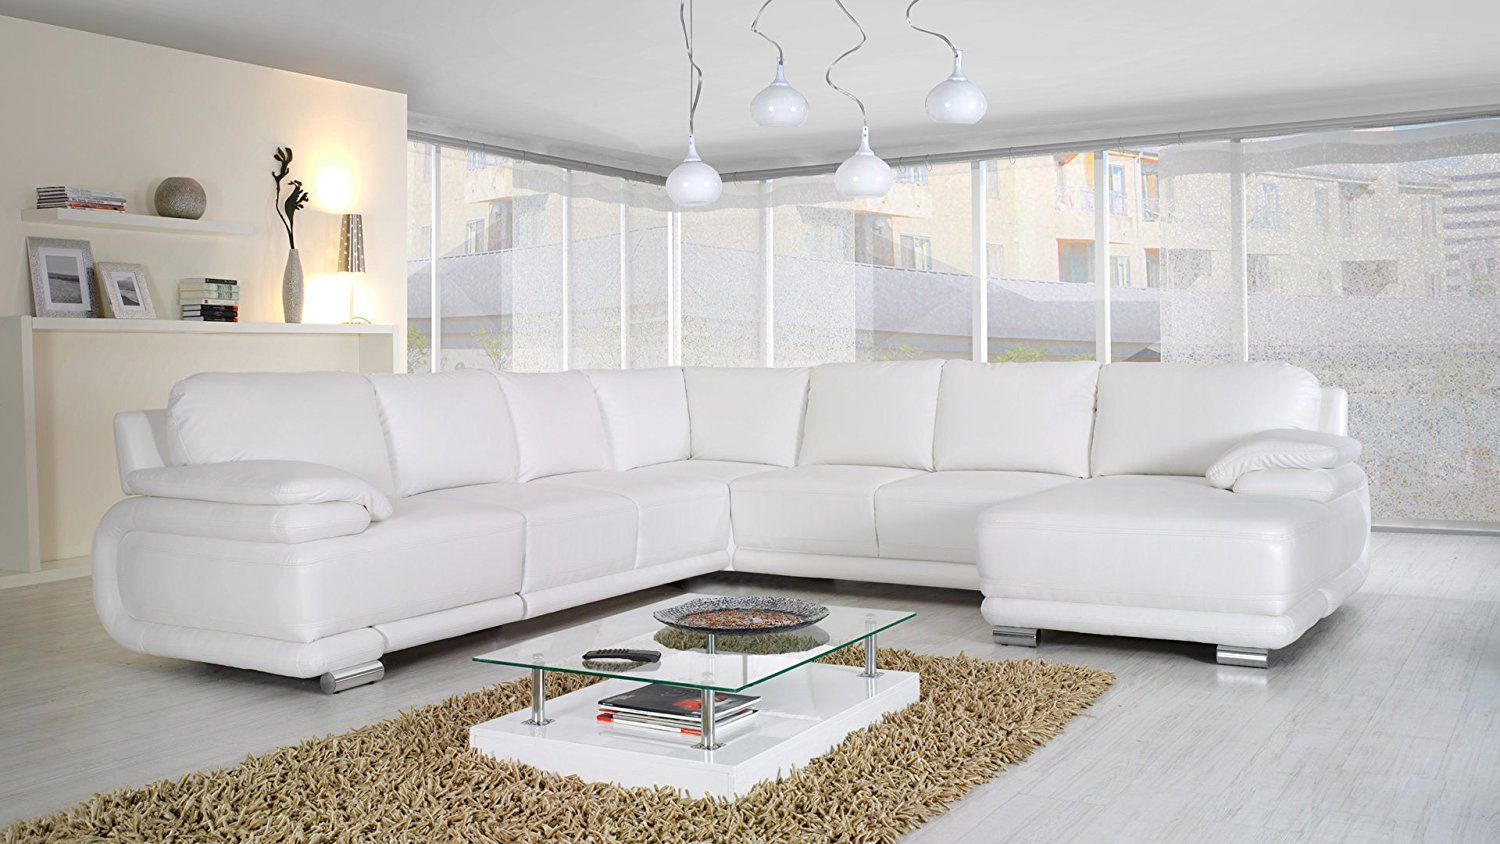 Sofa In Küche Aposdavos Apos Sofa Stylish Mega Xxl Large Sofa With Sleep